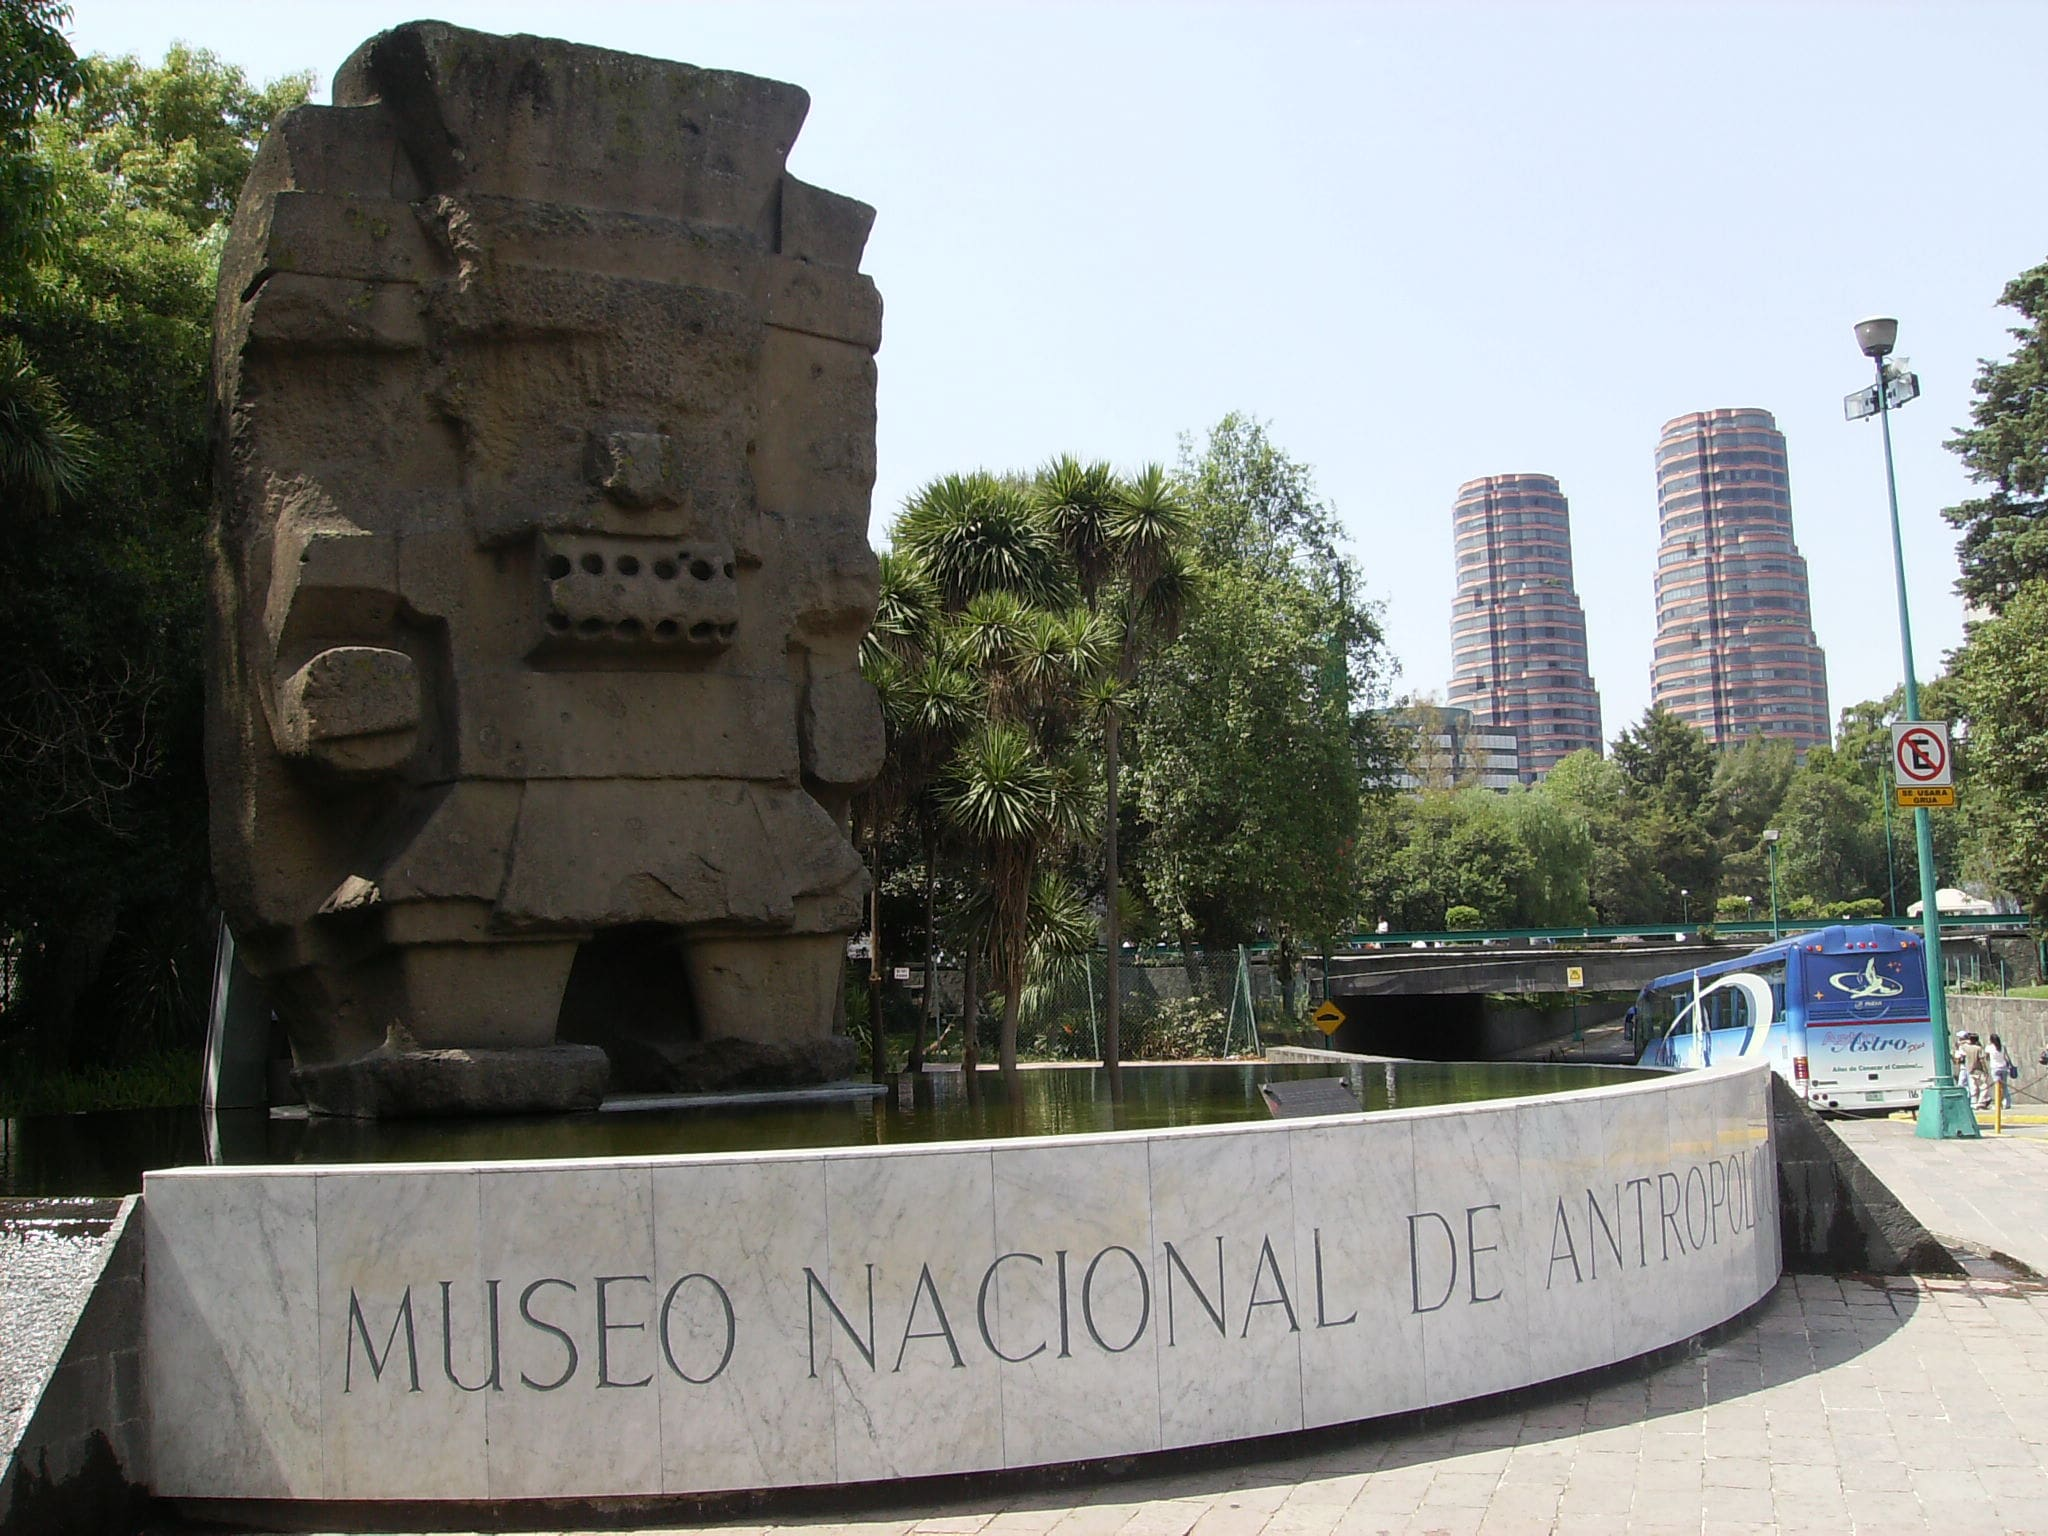 The Museo Nacional de Antropologia is one of the coolest things to do in Mexico City